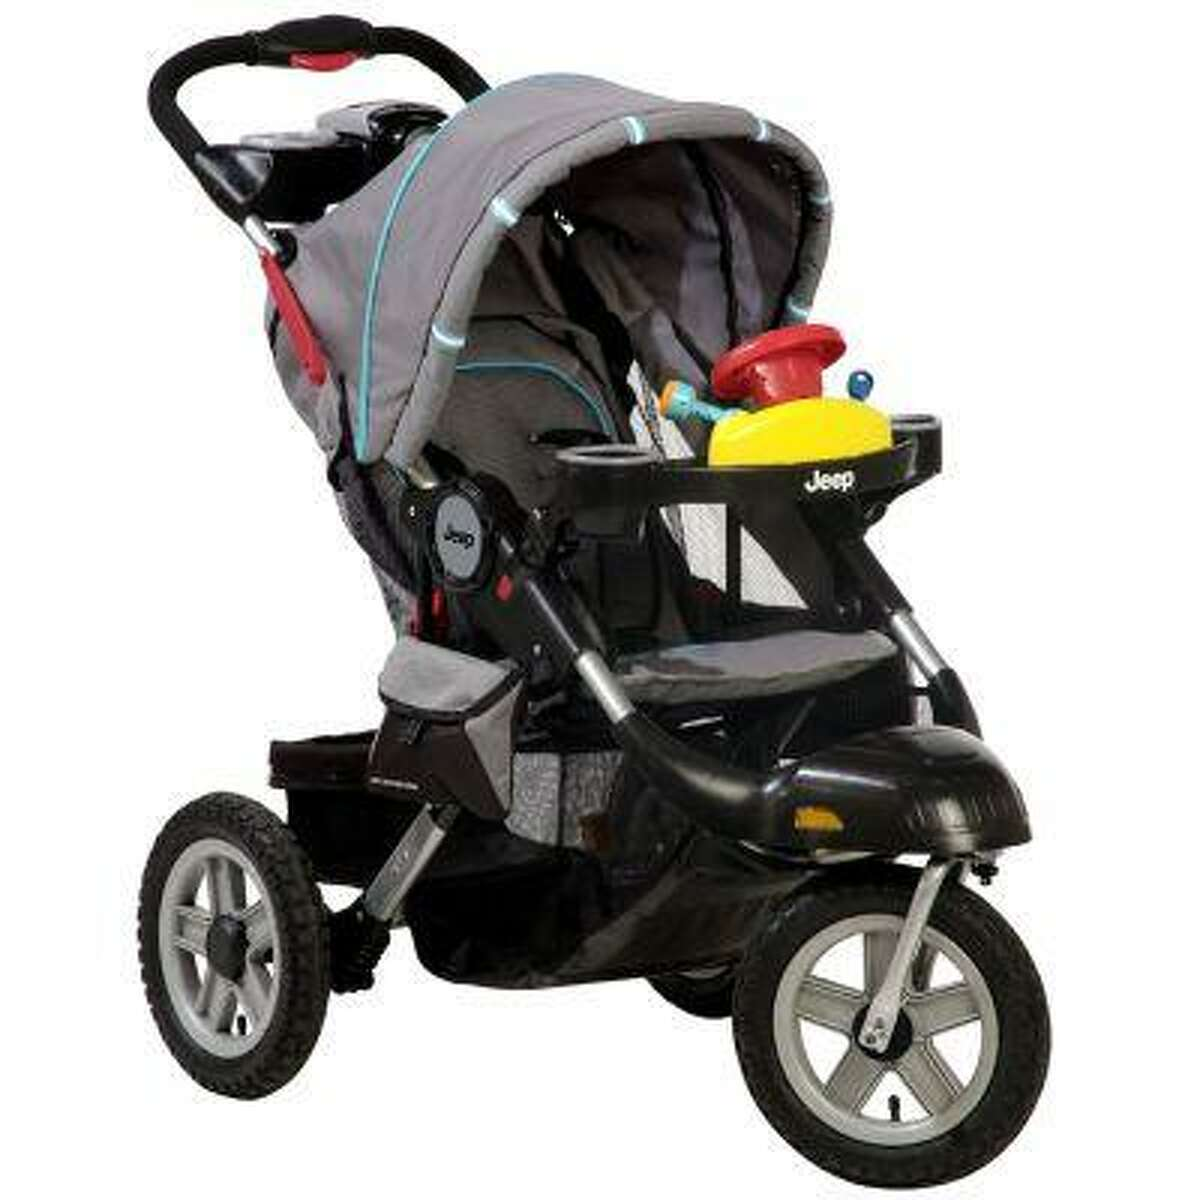 A Jeep Liberty Stroller is seen in an undated photo provided by the Consumer Product Safety Commission. A recall of the stroller by Kolcraft was issued Wednesday, June 19, 2013 due to a projectile hazard; he inner tube of the tire on the stroller can rupture causing the wheel rim to fracture and fly off as a projectile, posing a risk of bodily injury and property damage. (AP Photo/Consumer Product Safety Commission)